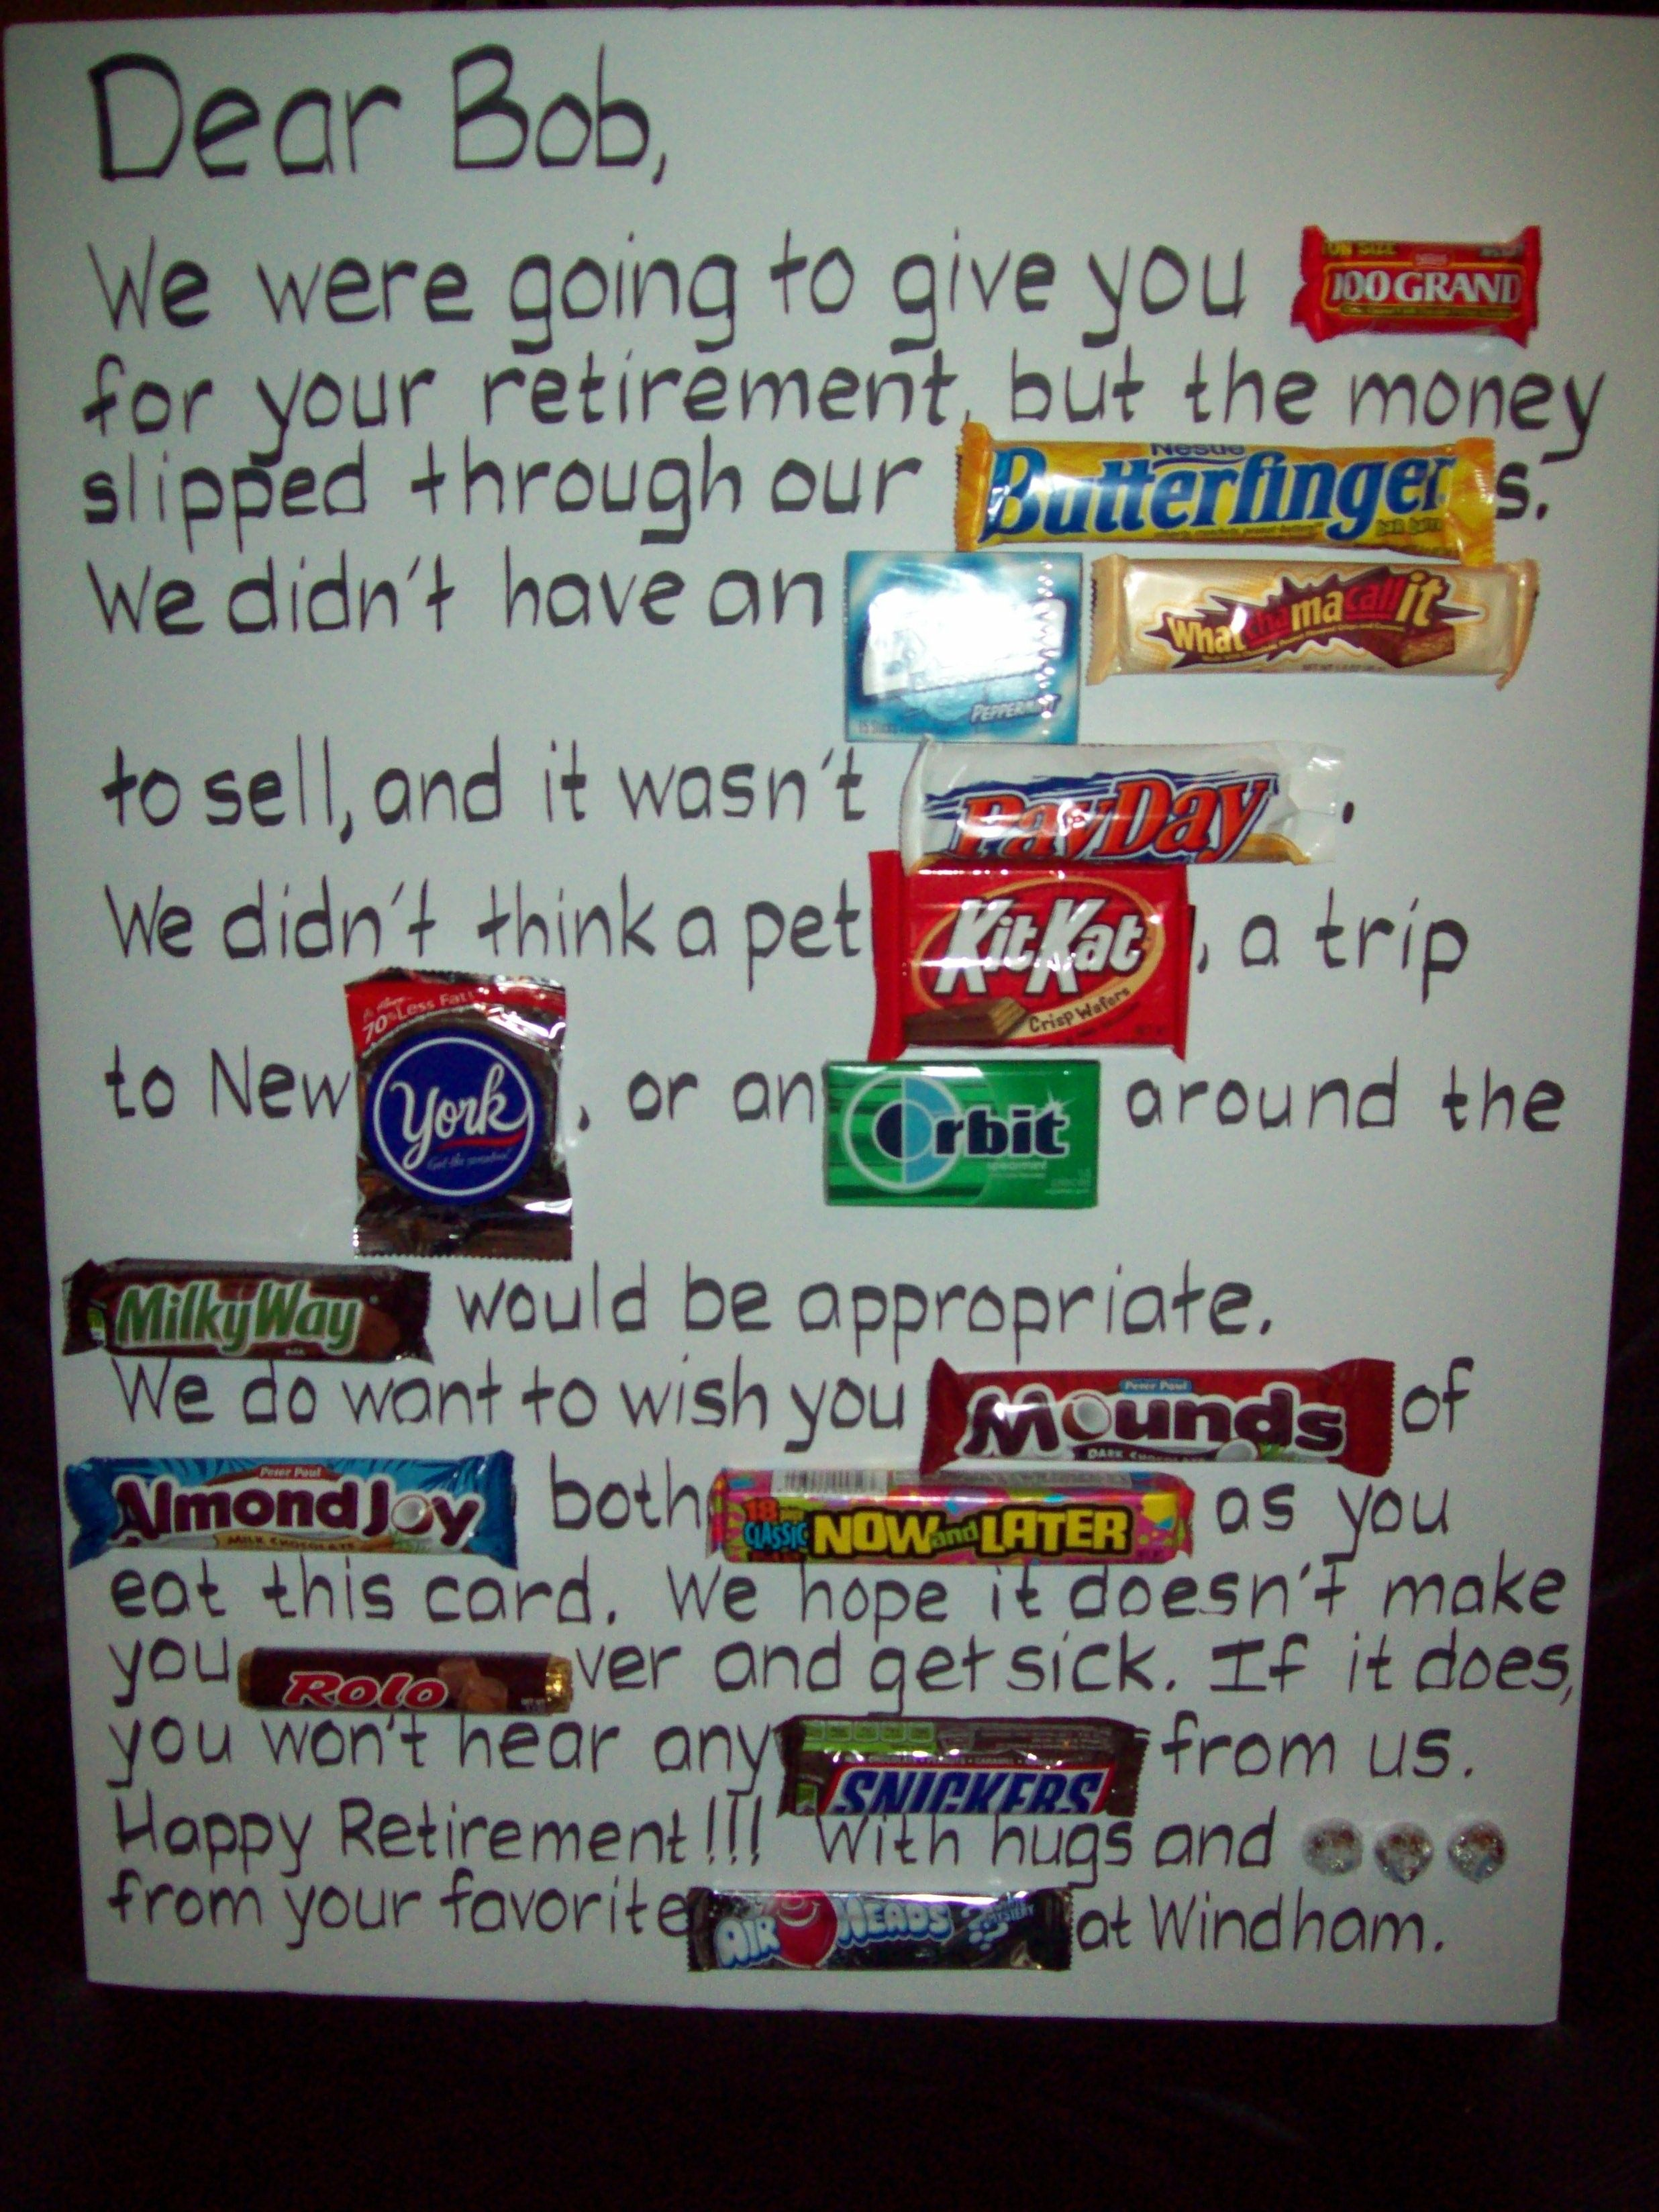 Candy retirement or even a birthday or travel carduld be